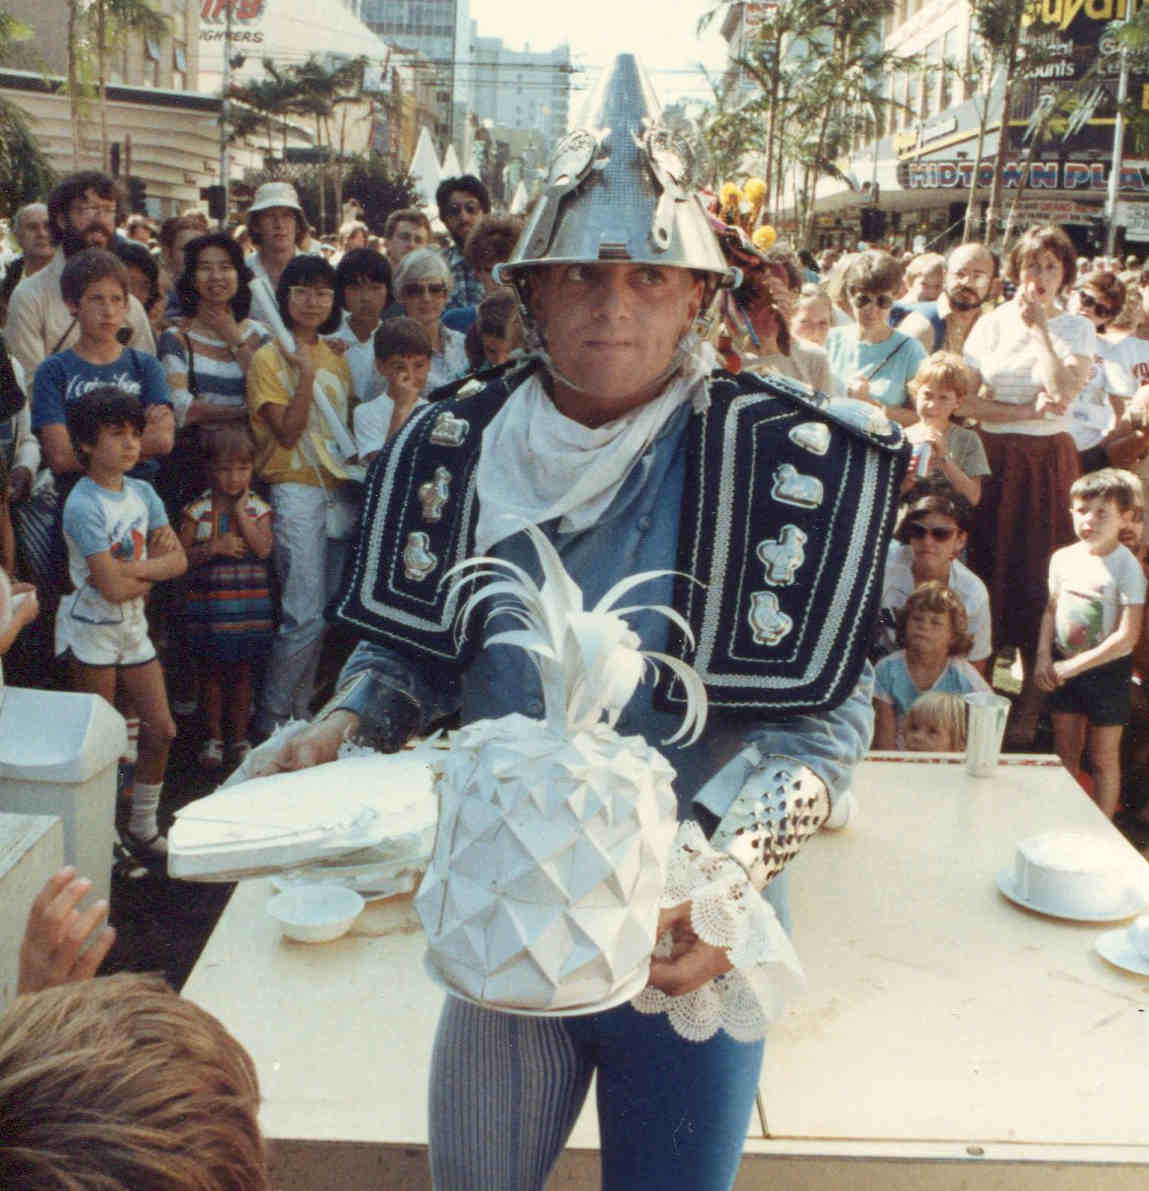 costumed actor in blue with colander helmet holding white cardboard pineapple